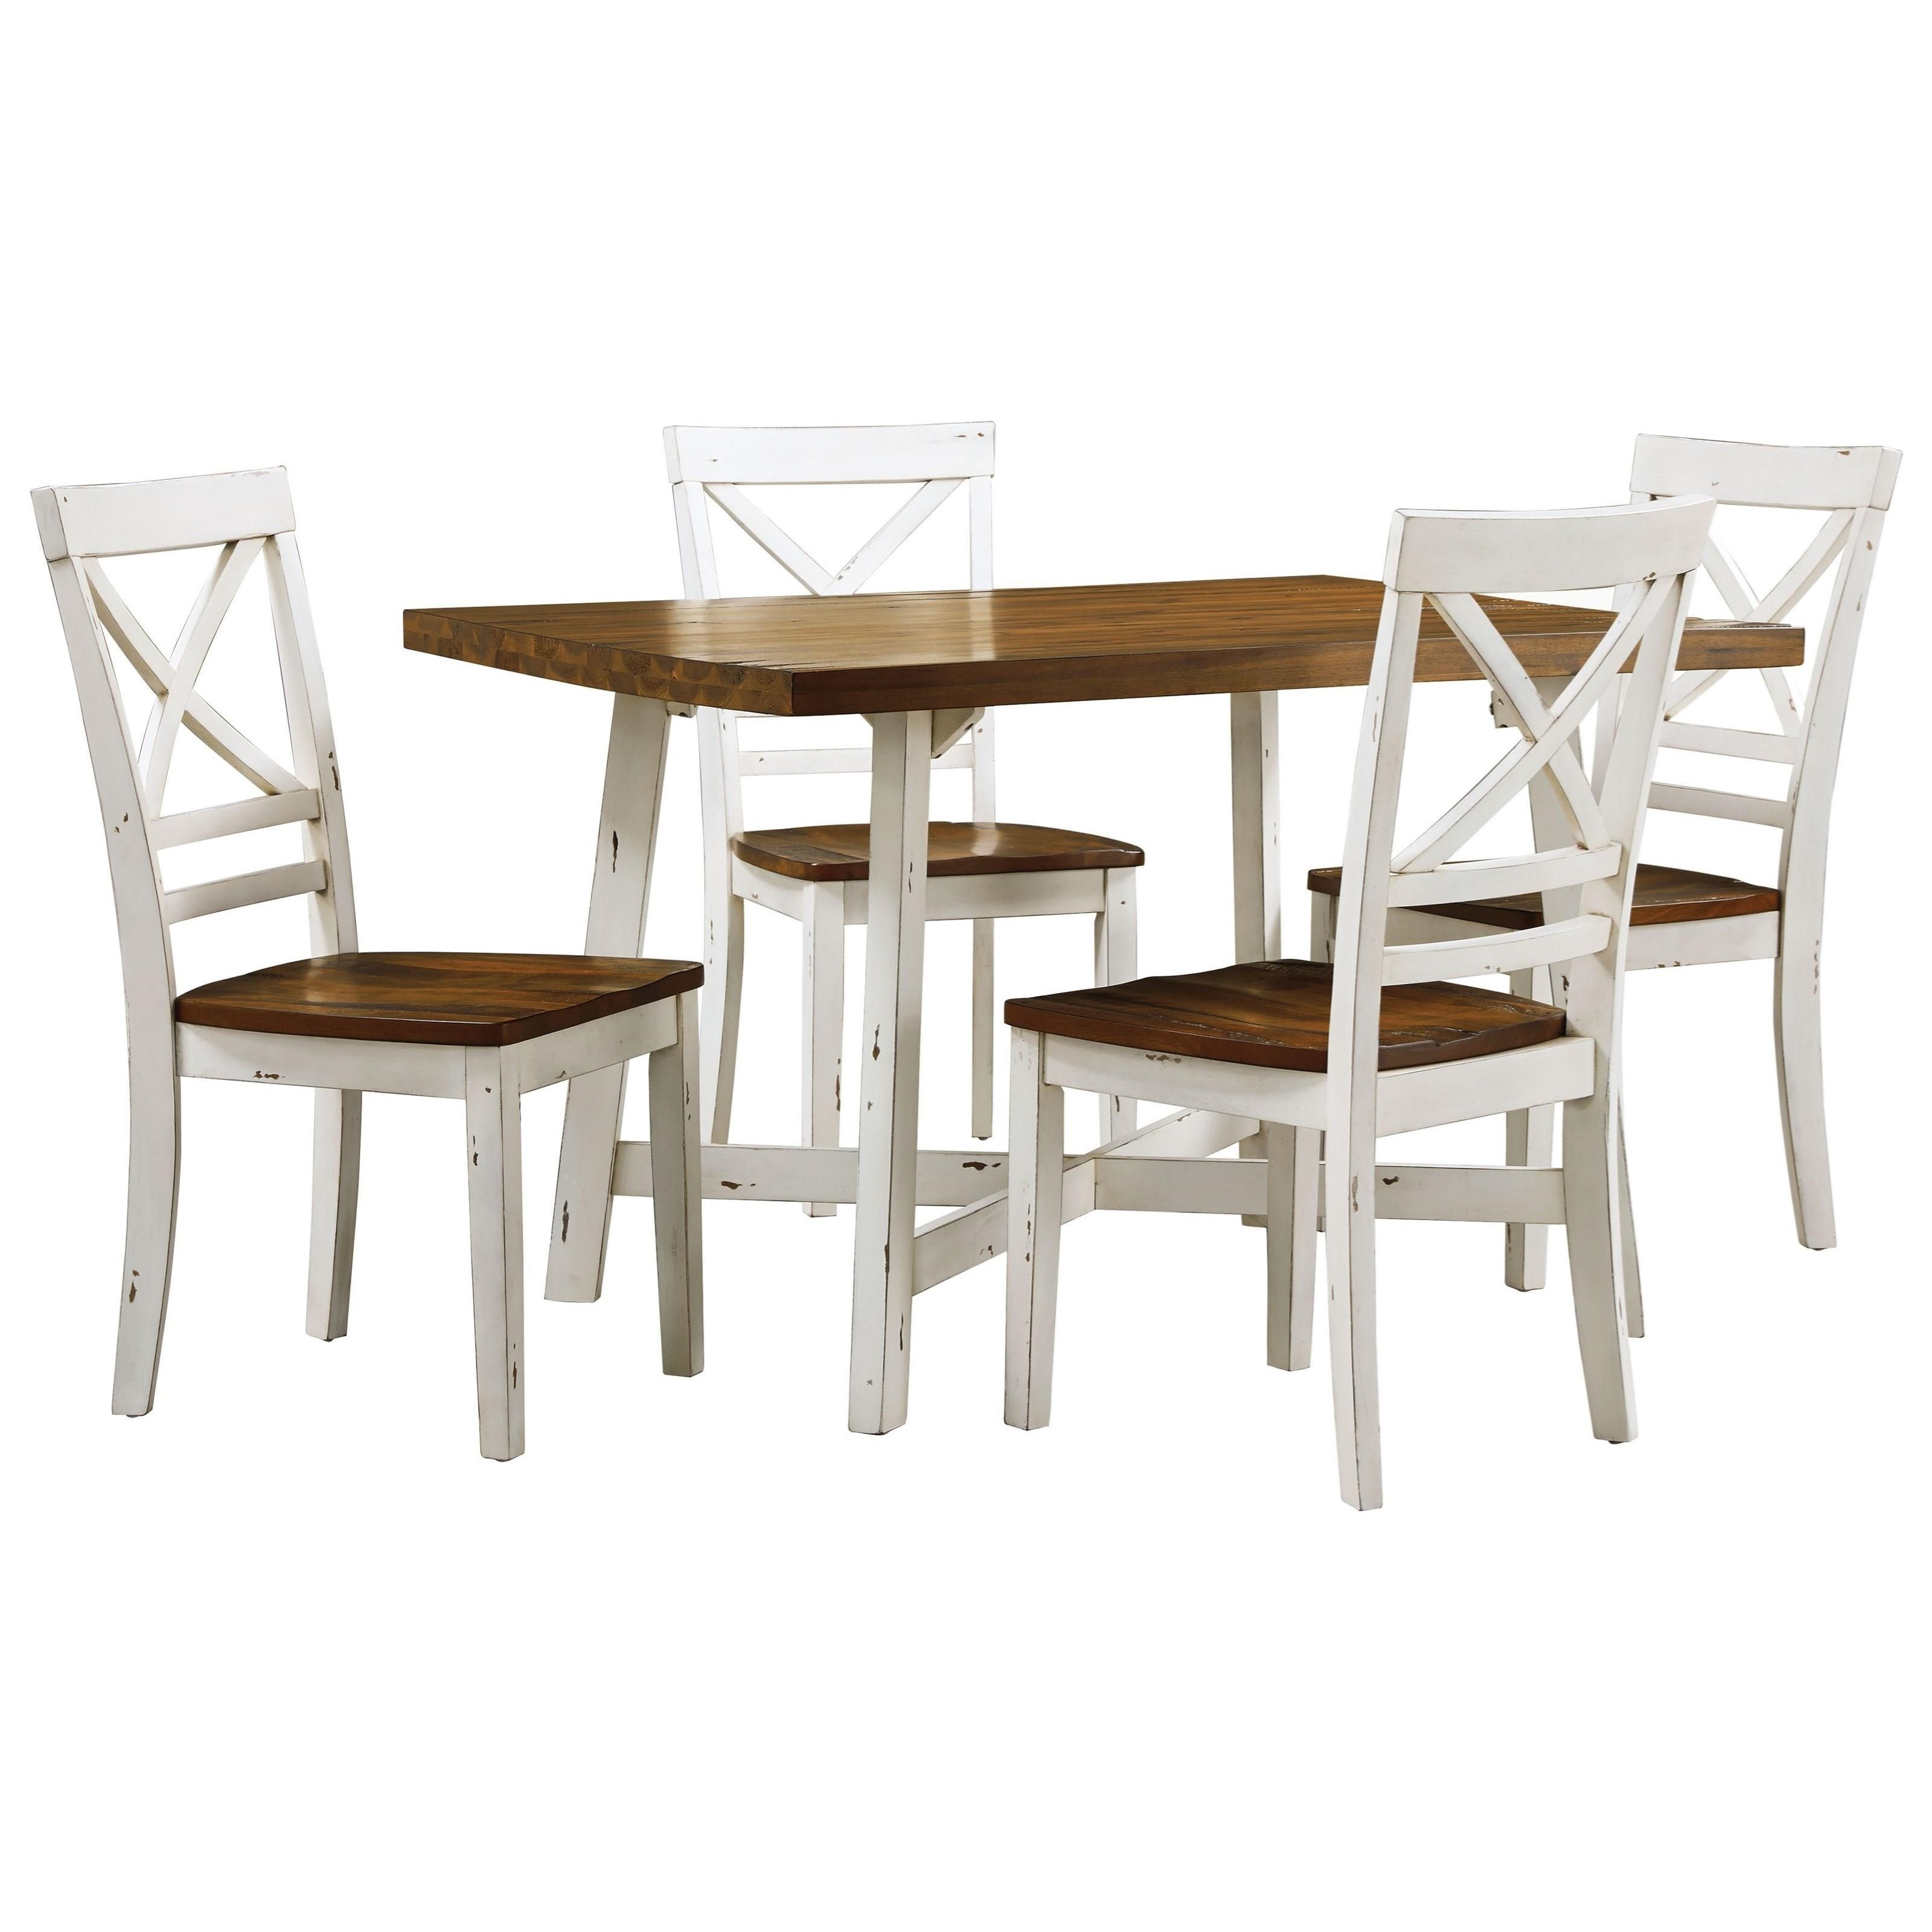 Standard Furniture AmeliaTable and Chair Set ...  sc 1 st  Great American Home Store & Standard Furniture Amelia 19082 Two-Tone Table and Chair Set | Great ...